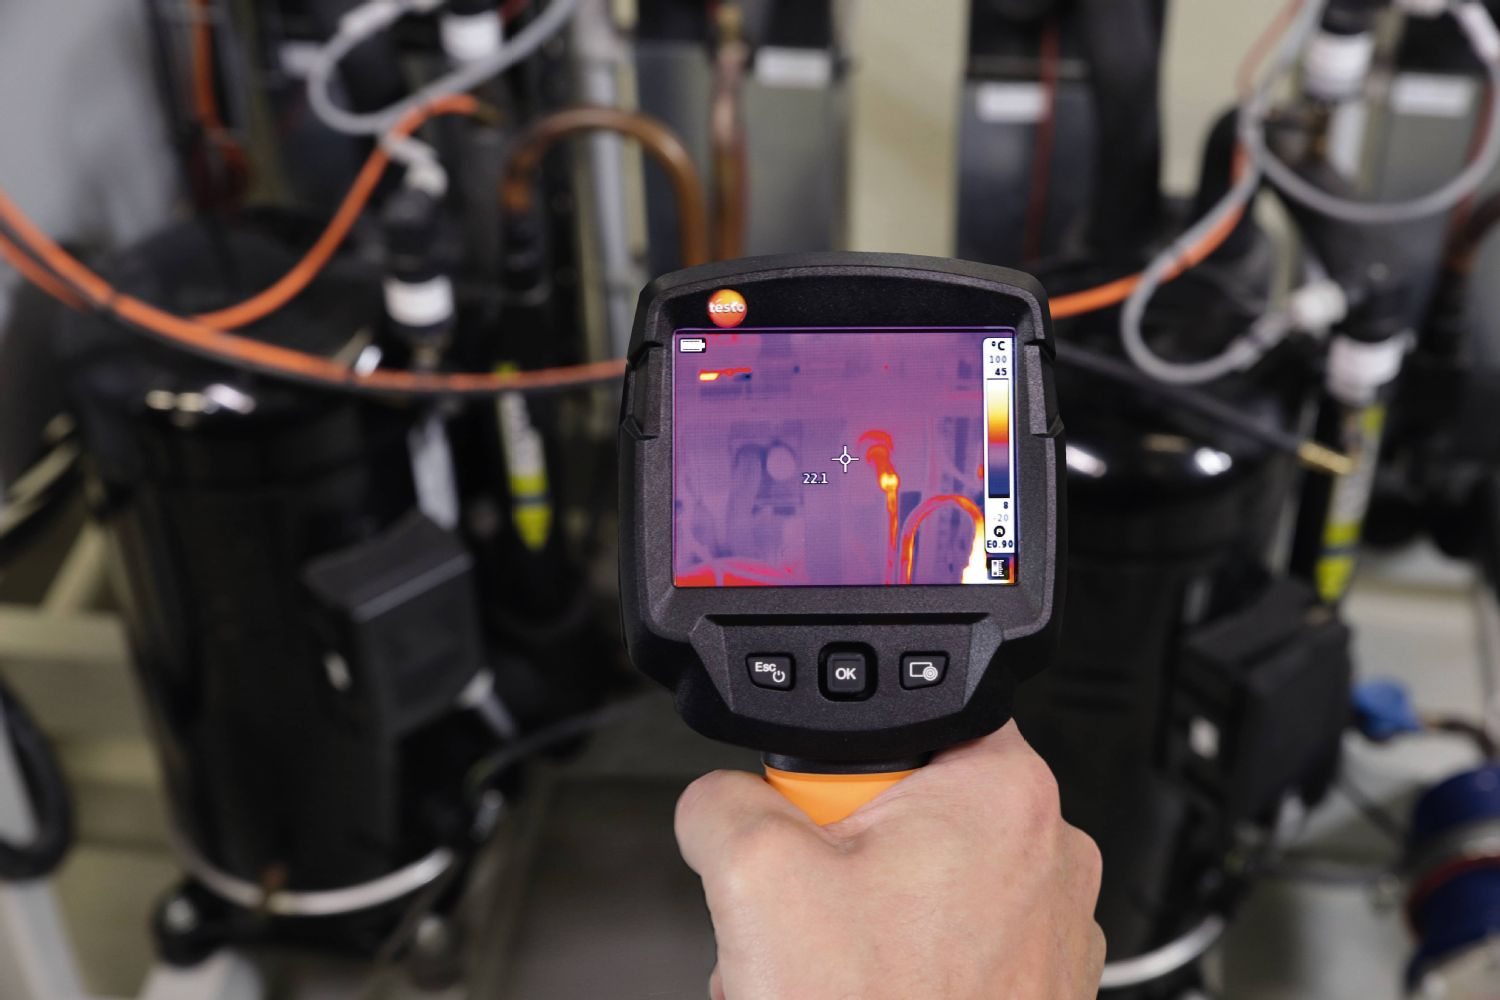 Thermography application technical systems